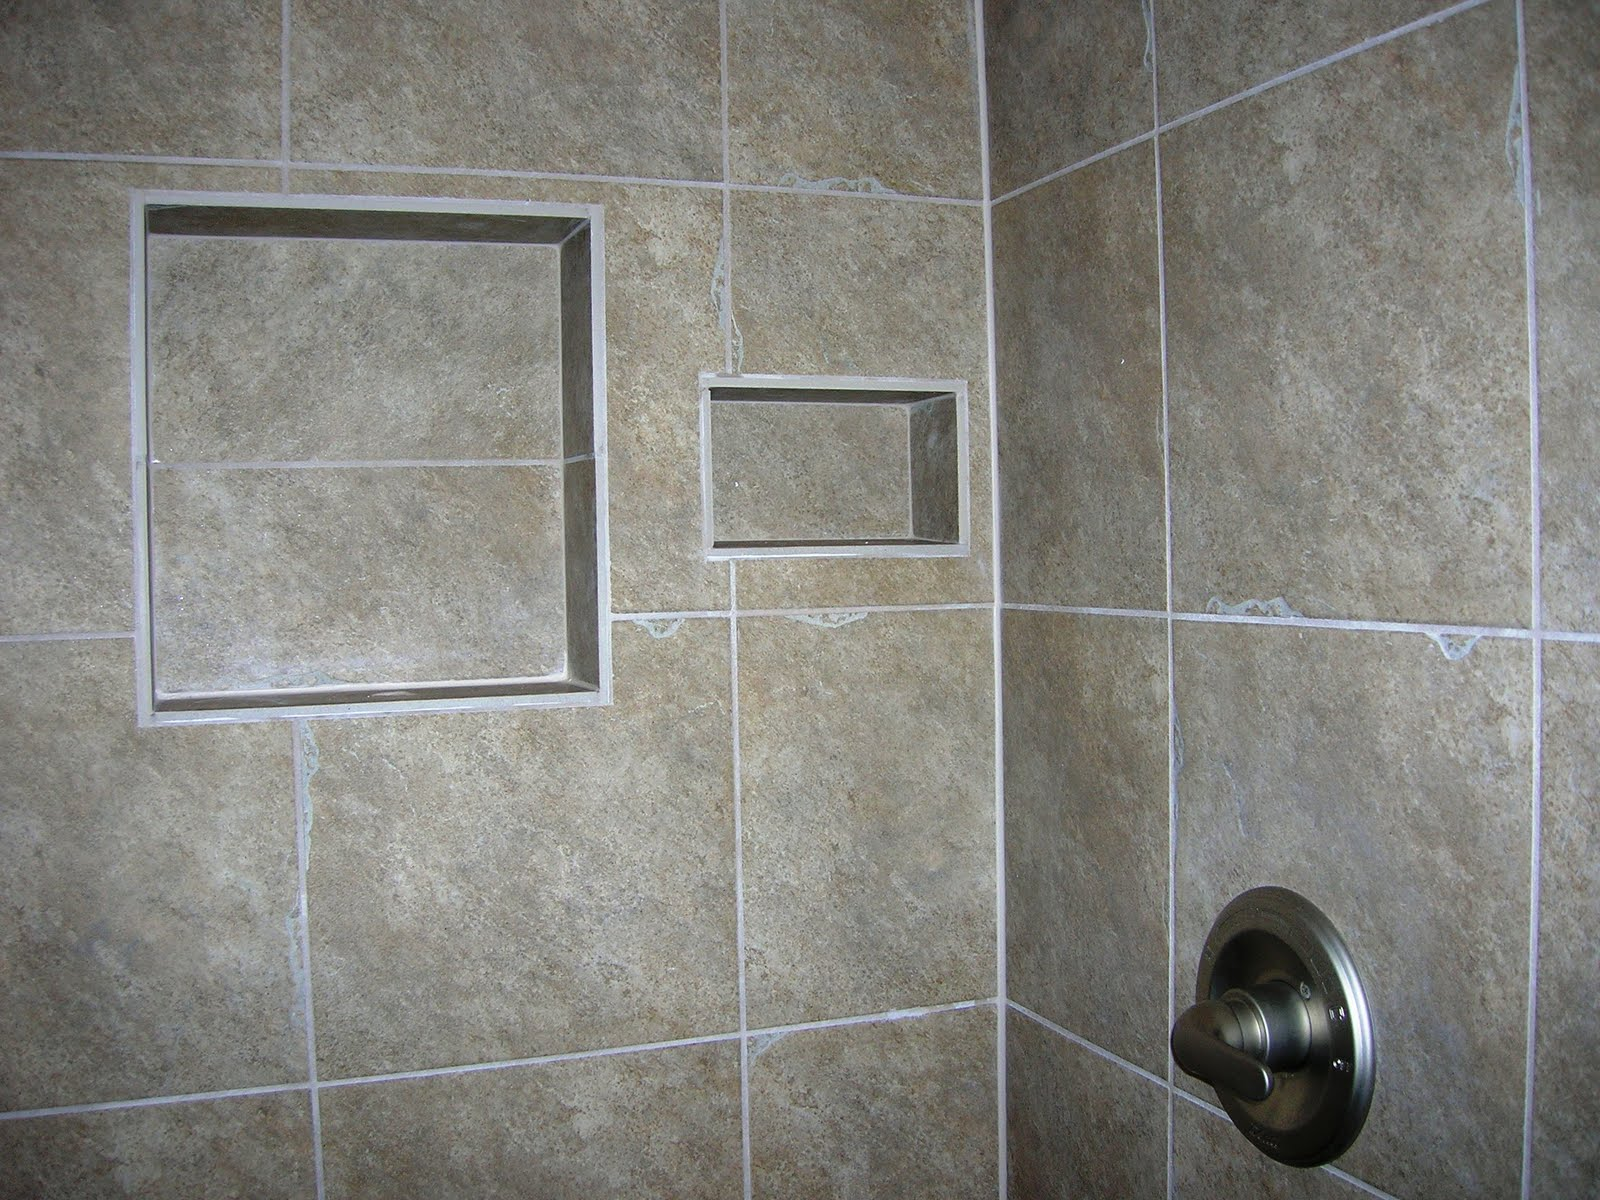 Bathroom Ideas With Ceramic Tile : Nice pictures and ideas of modern bathroom wall tile